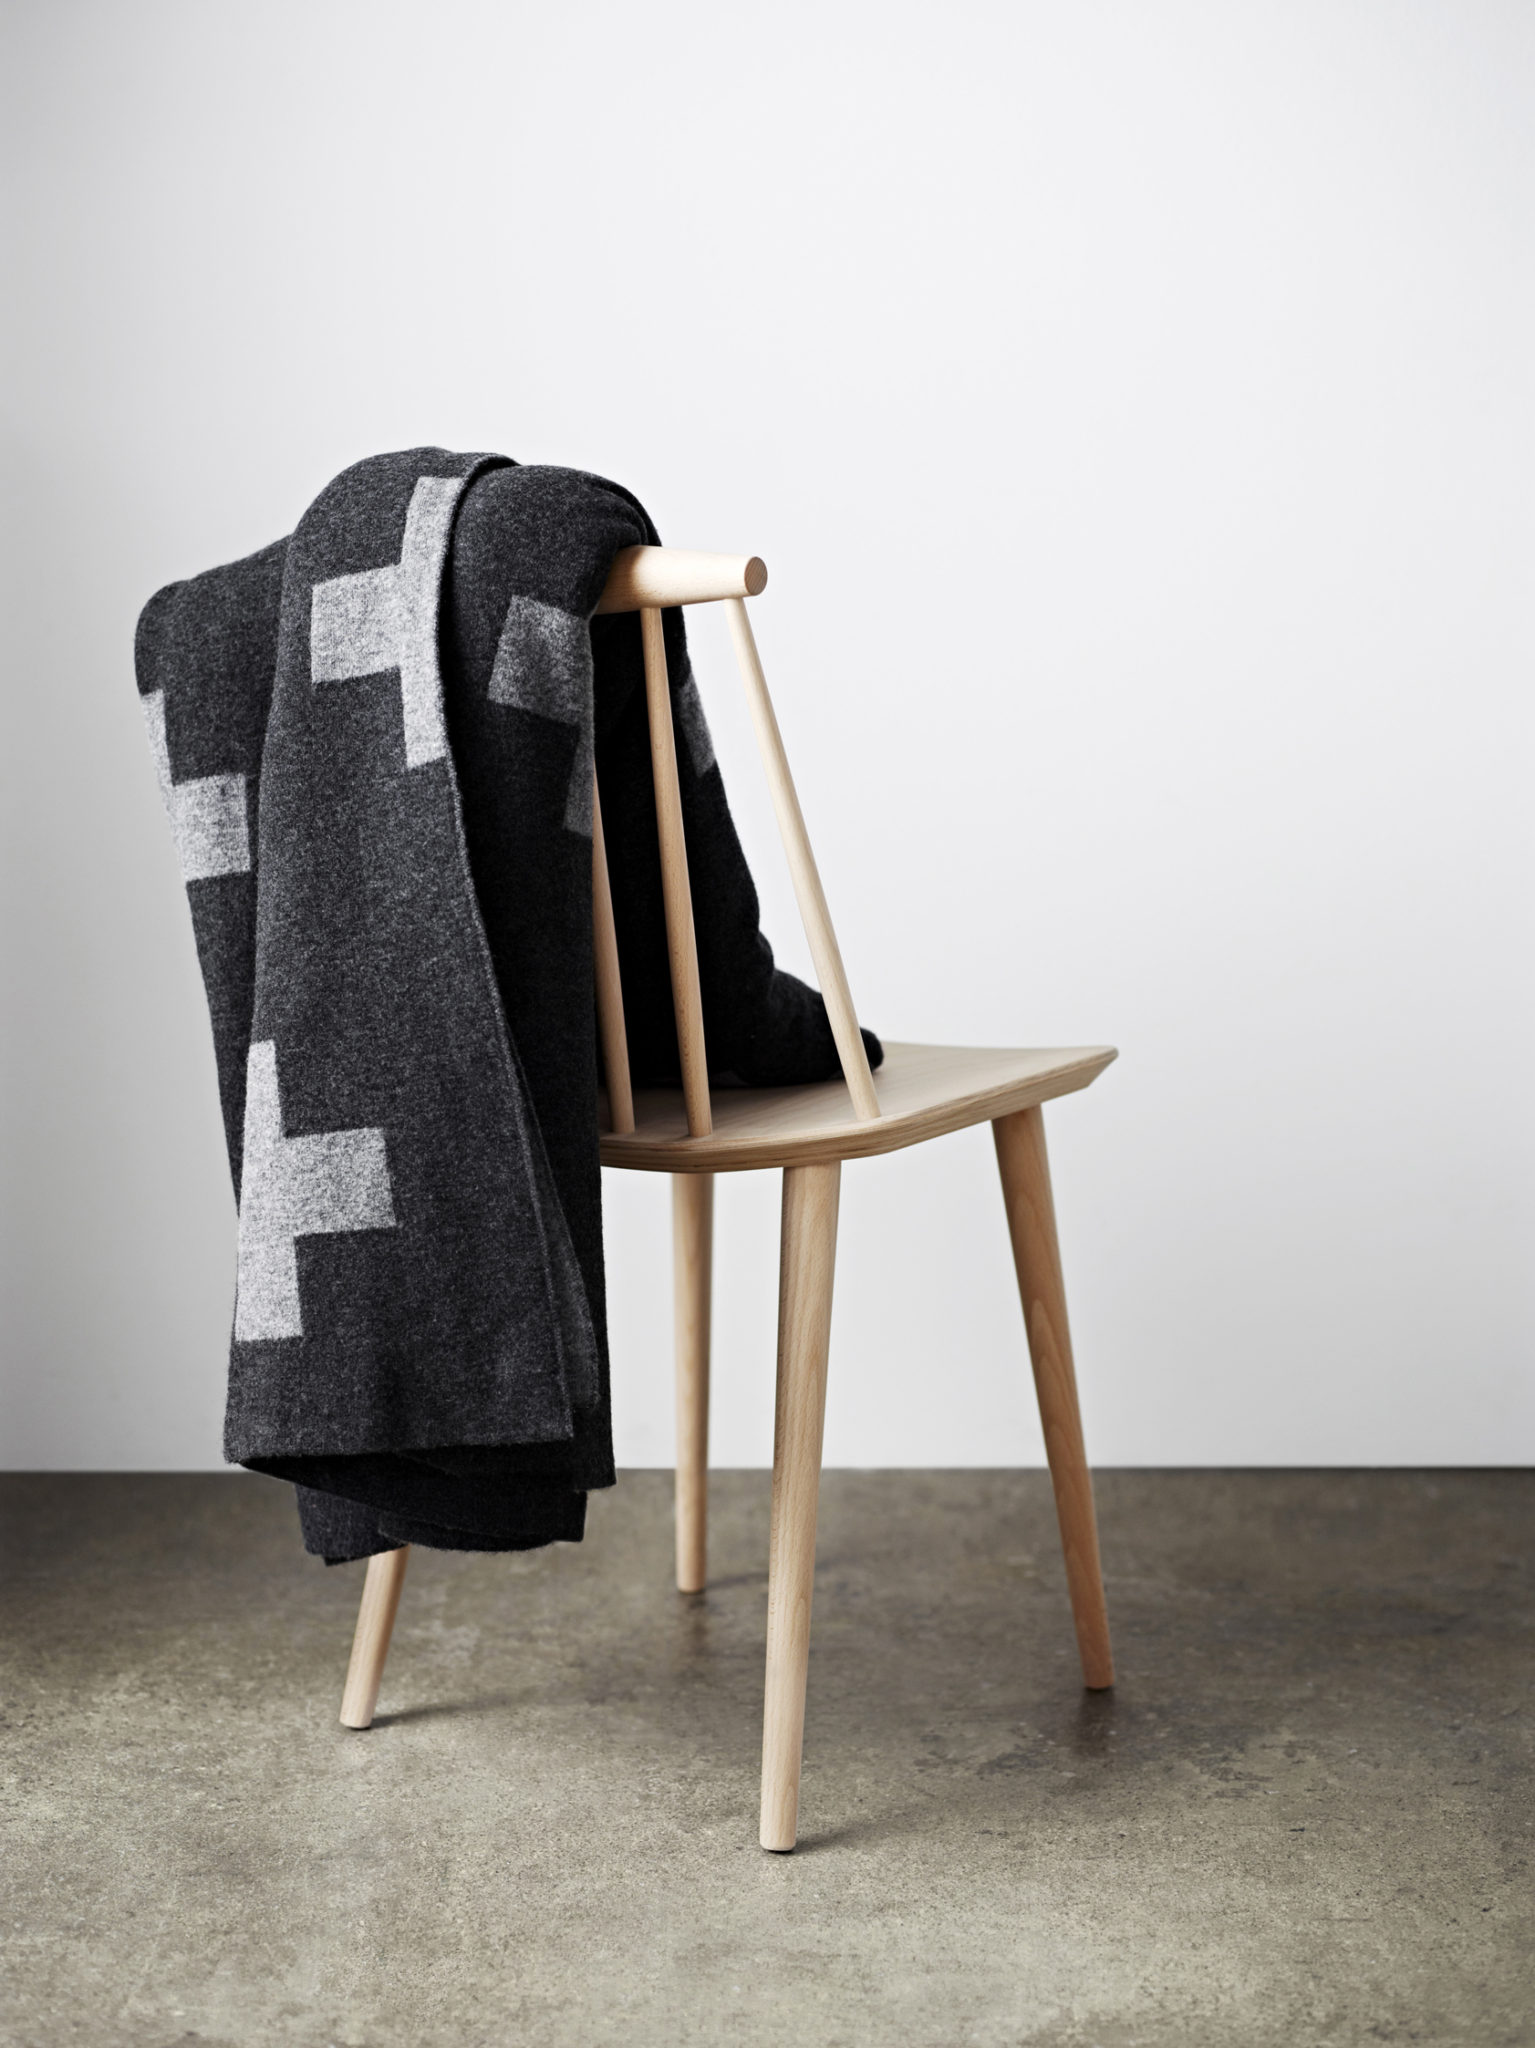 This throw reminds me of the even popular Crux Blanket by Swedish designer Pia Wallen